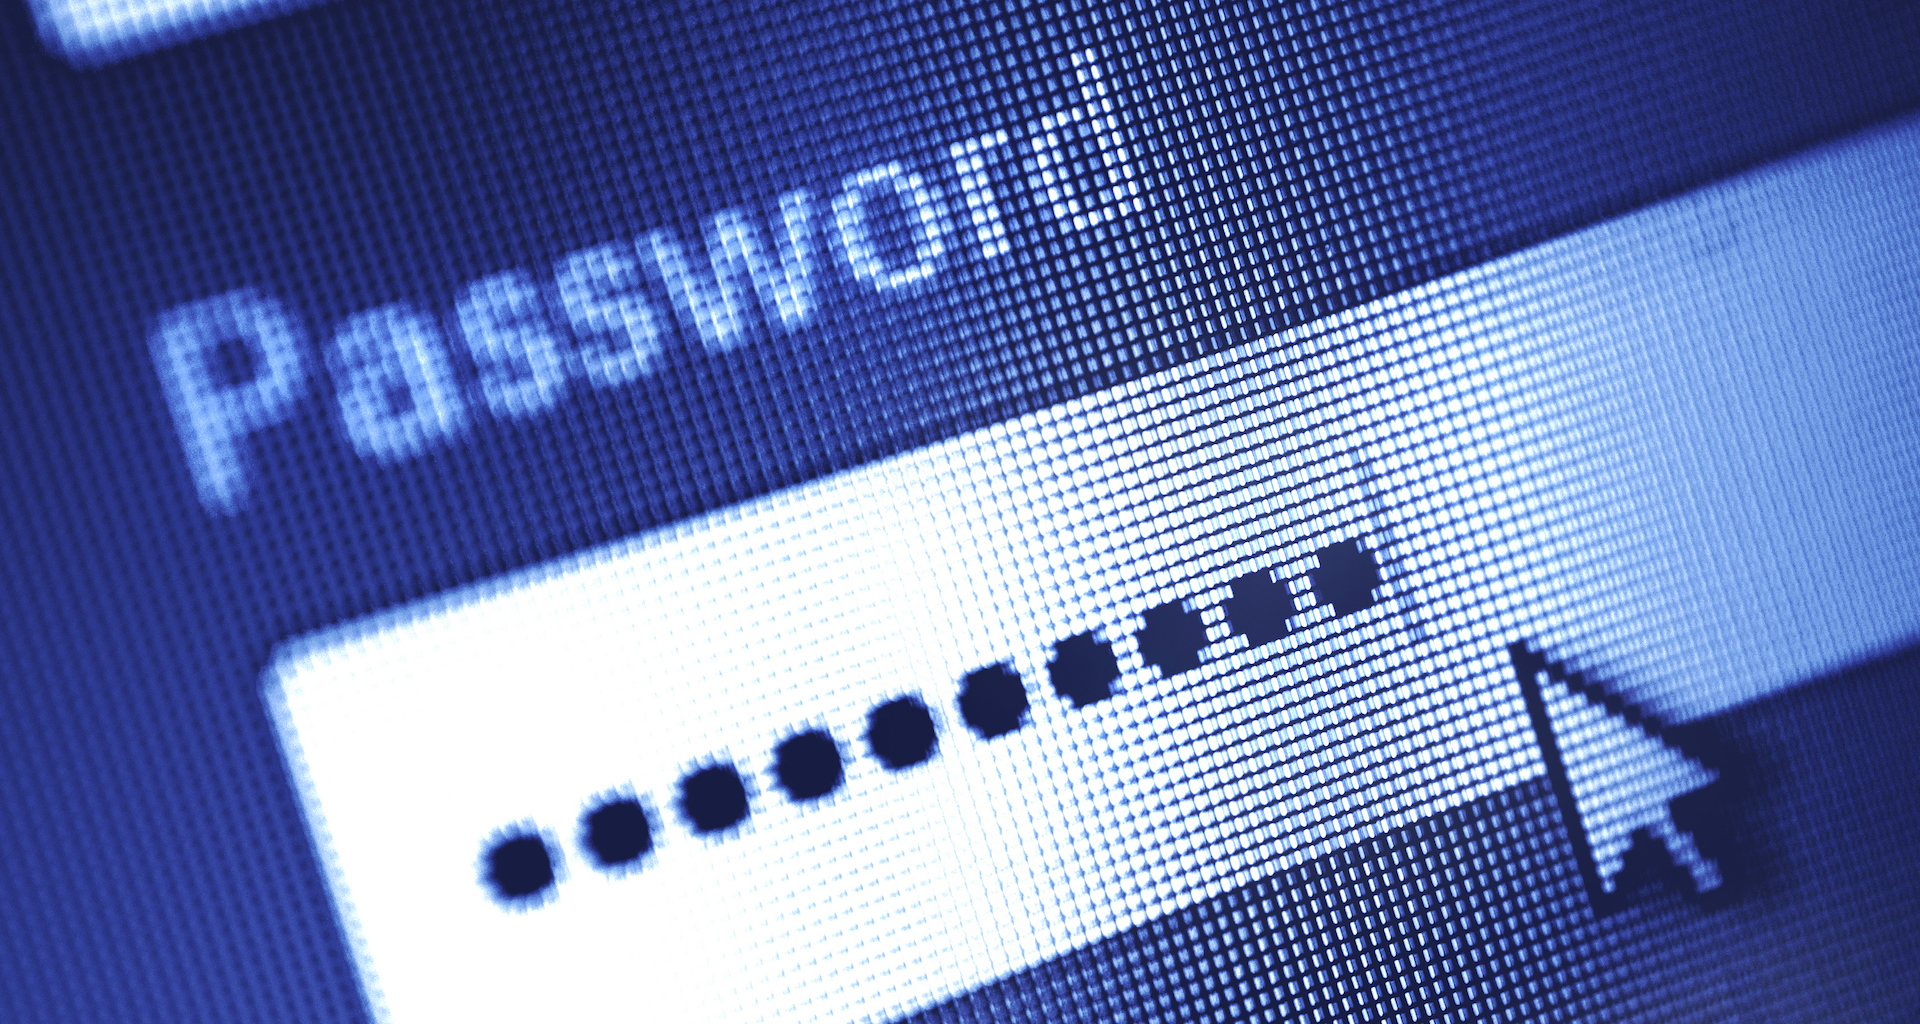 A phishing campaign's collateral damage: Stolen passwords were publicly searchable - CyberScoop